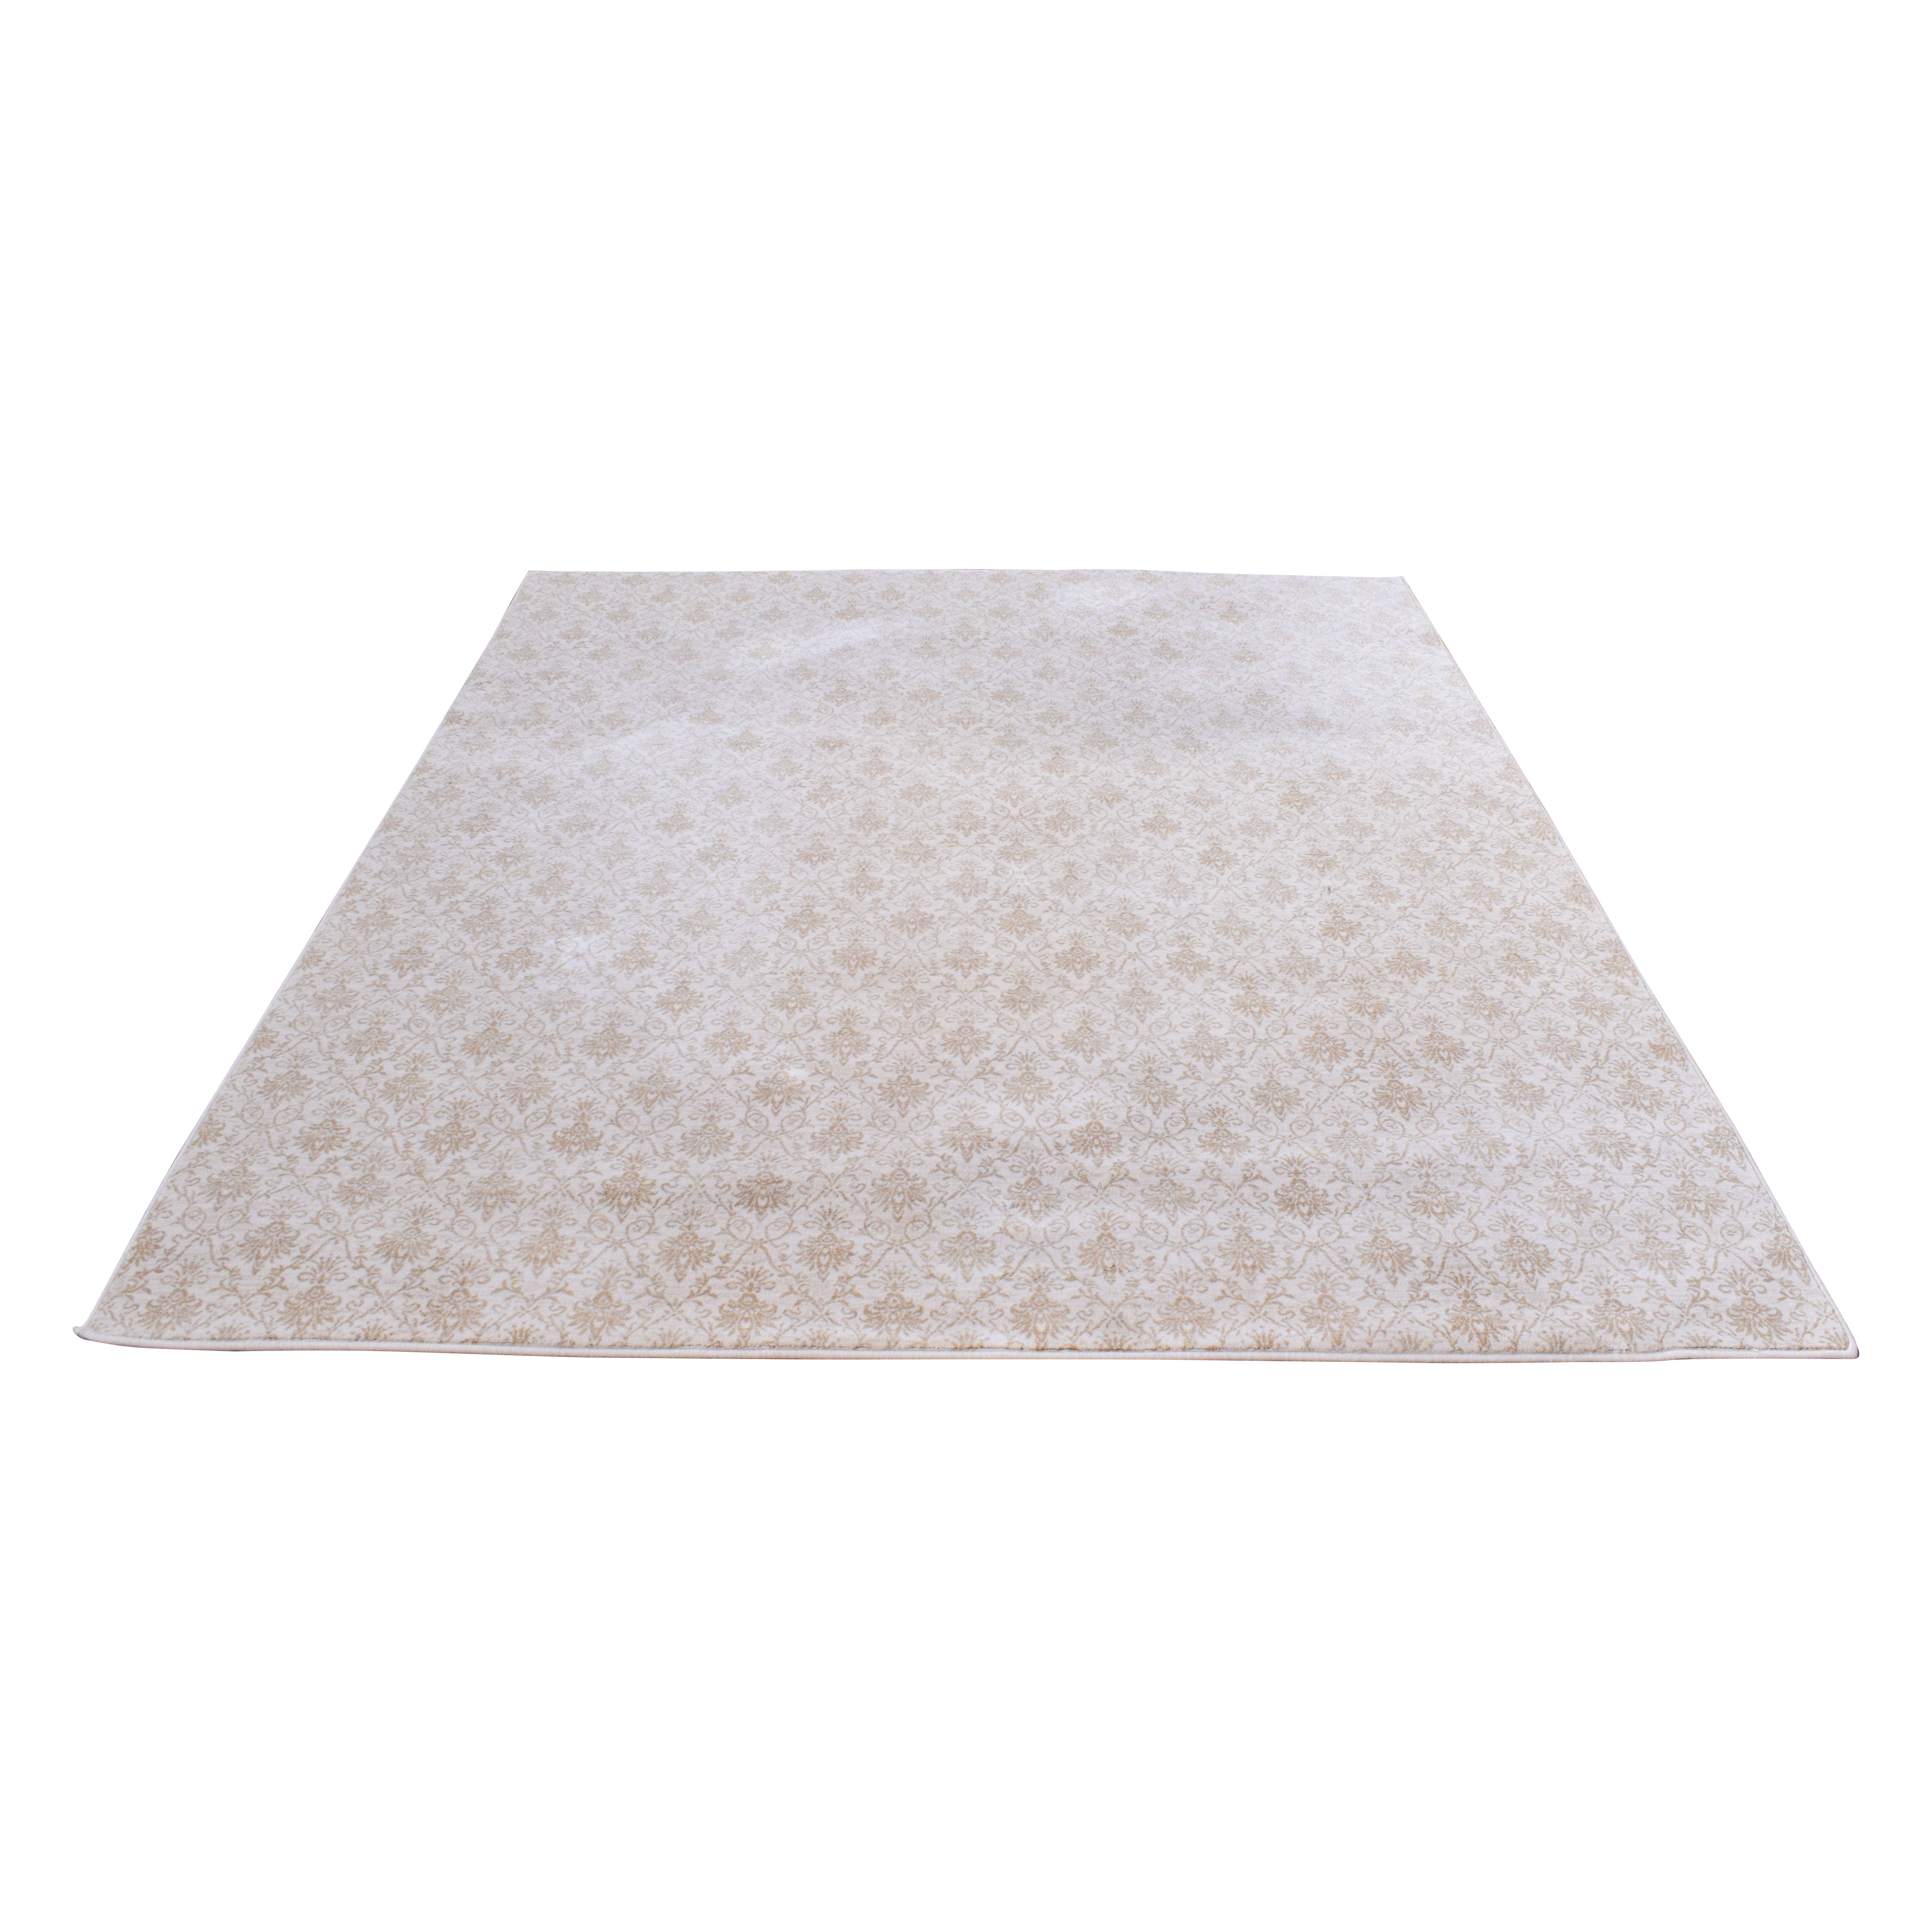 Stanton Stanton Handcrafted Area Rug ma